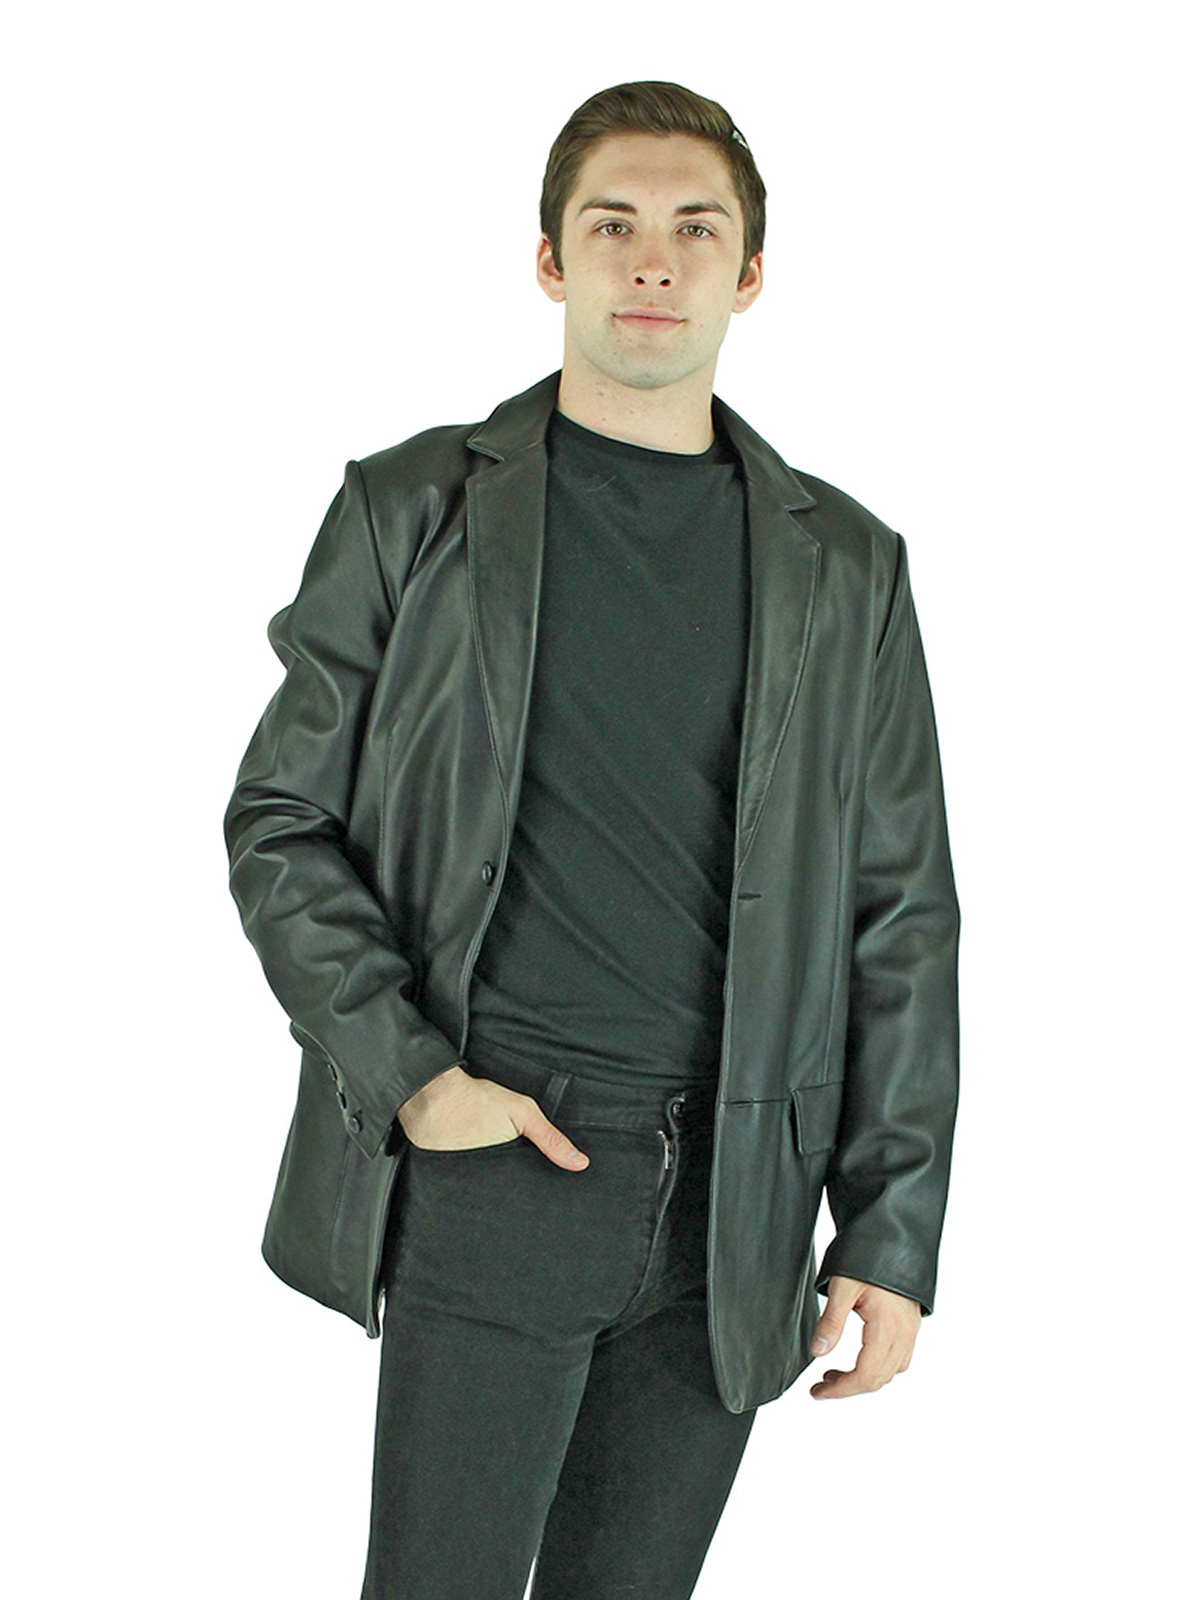 Man's New Black Leather Blazer